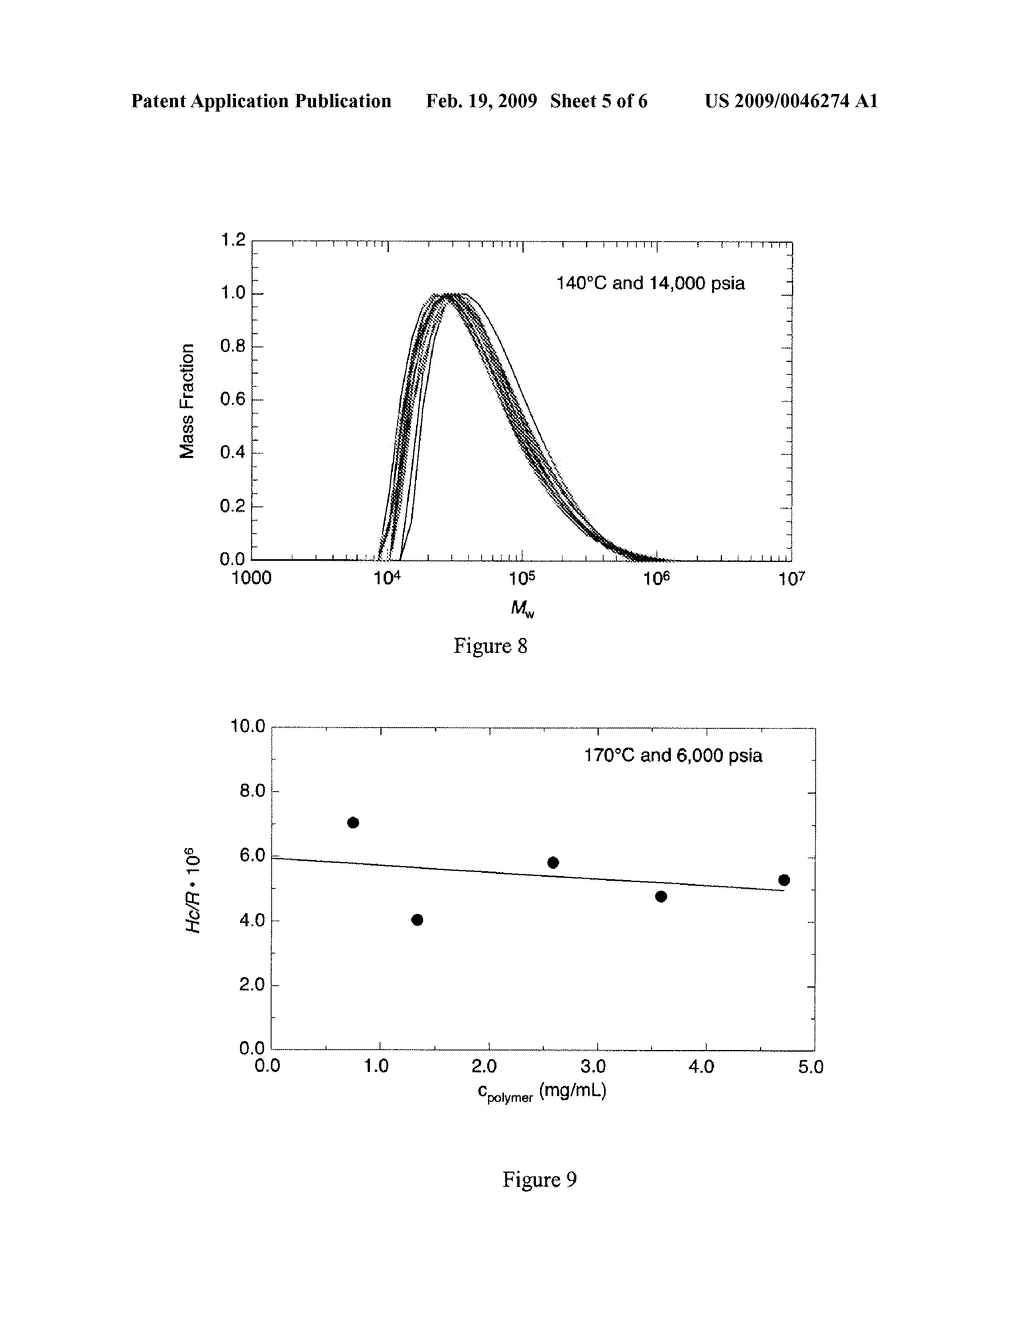 Light Scattering Methods and Systems Using Supercritical Fluid Solvents to Measure Polymer Molecular Weight and Molecular Weight Distribution - diagram, schematic, and image 06